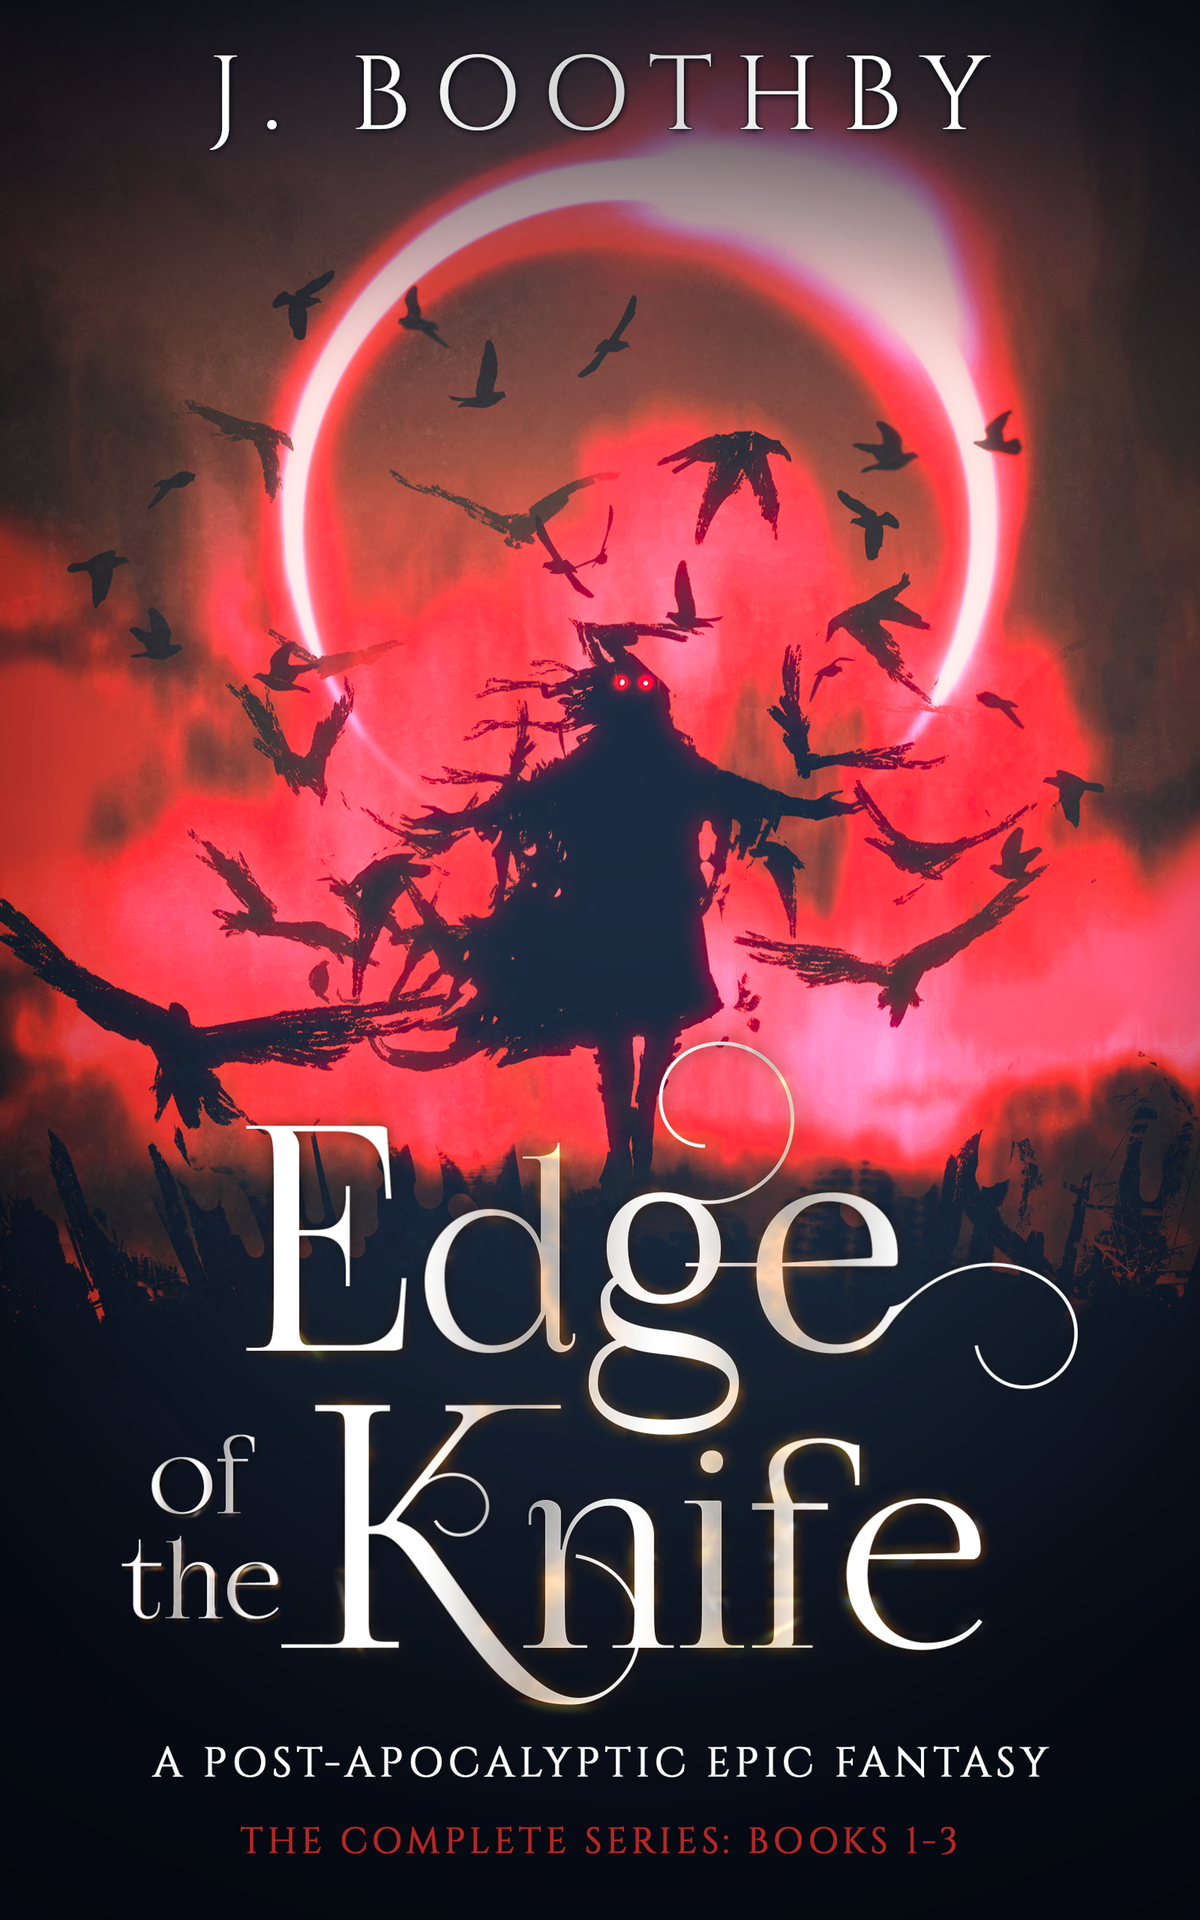 Ebook cover for Edge of the Knife, a stand alone Post-Apocalyptic Urban Fantasy ebook